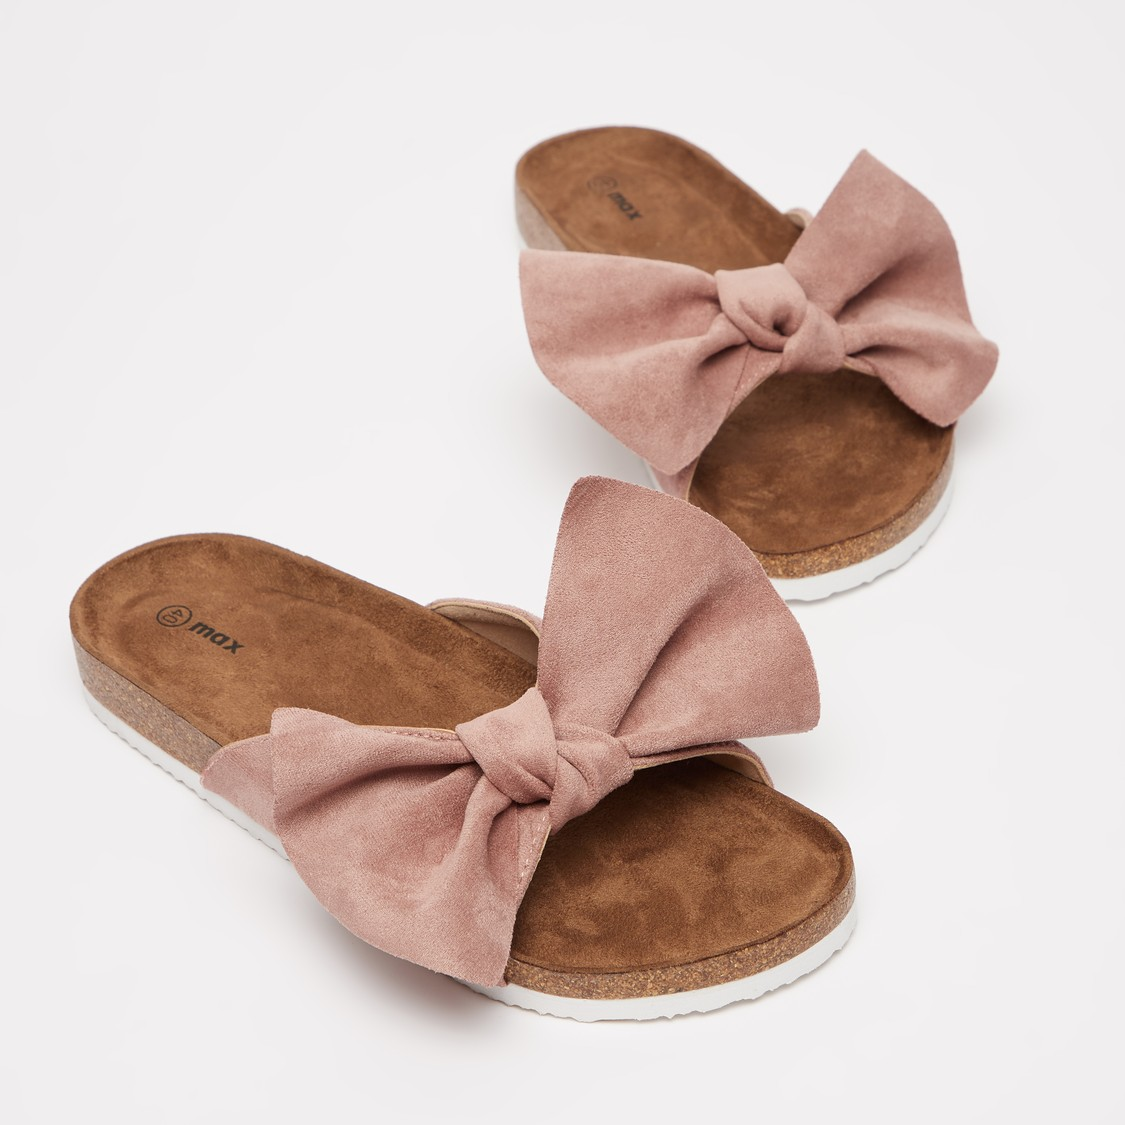 Flat Sandals with Bow Shaped Accent